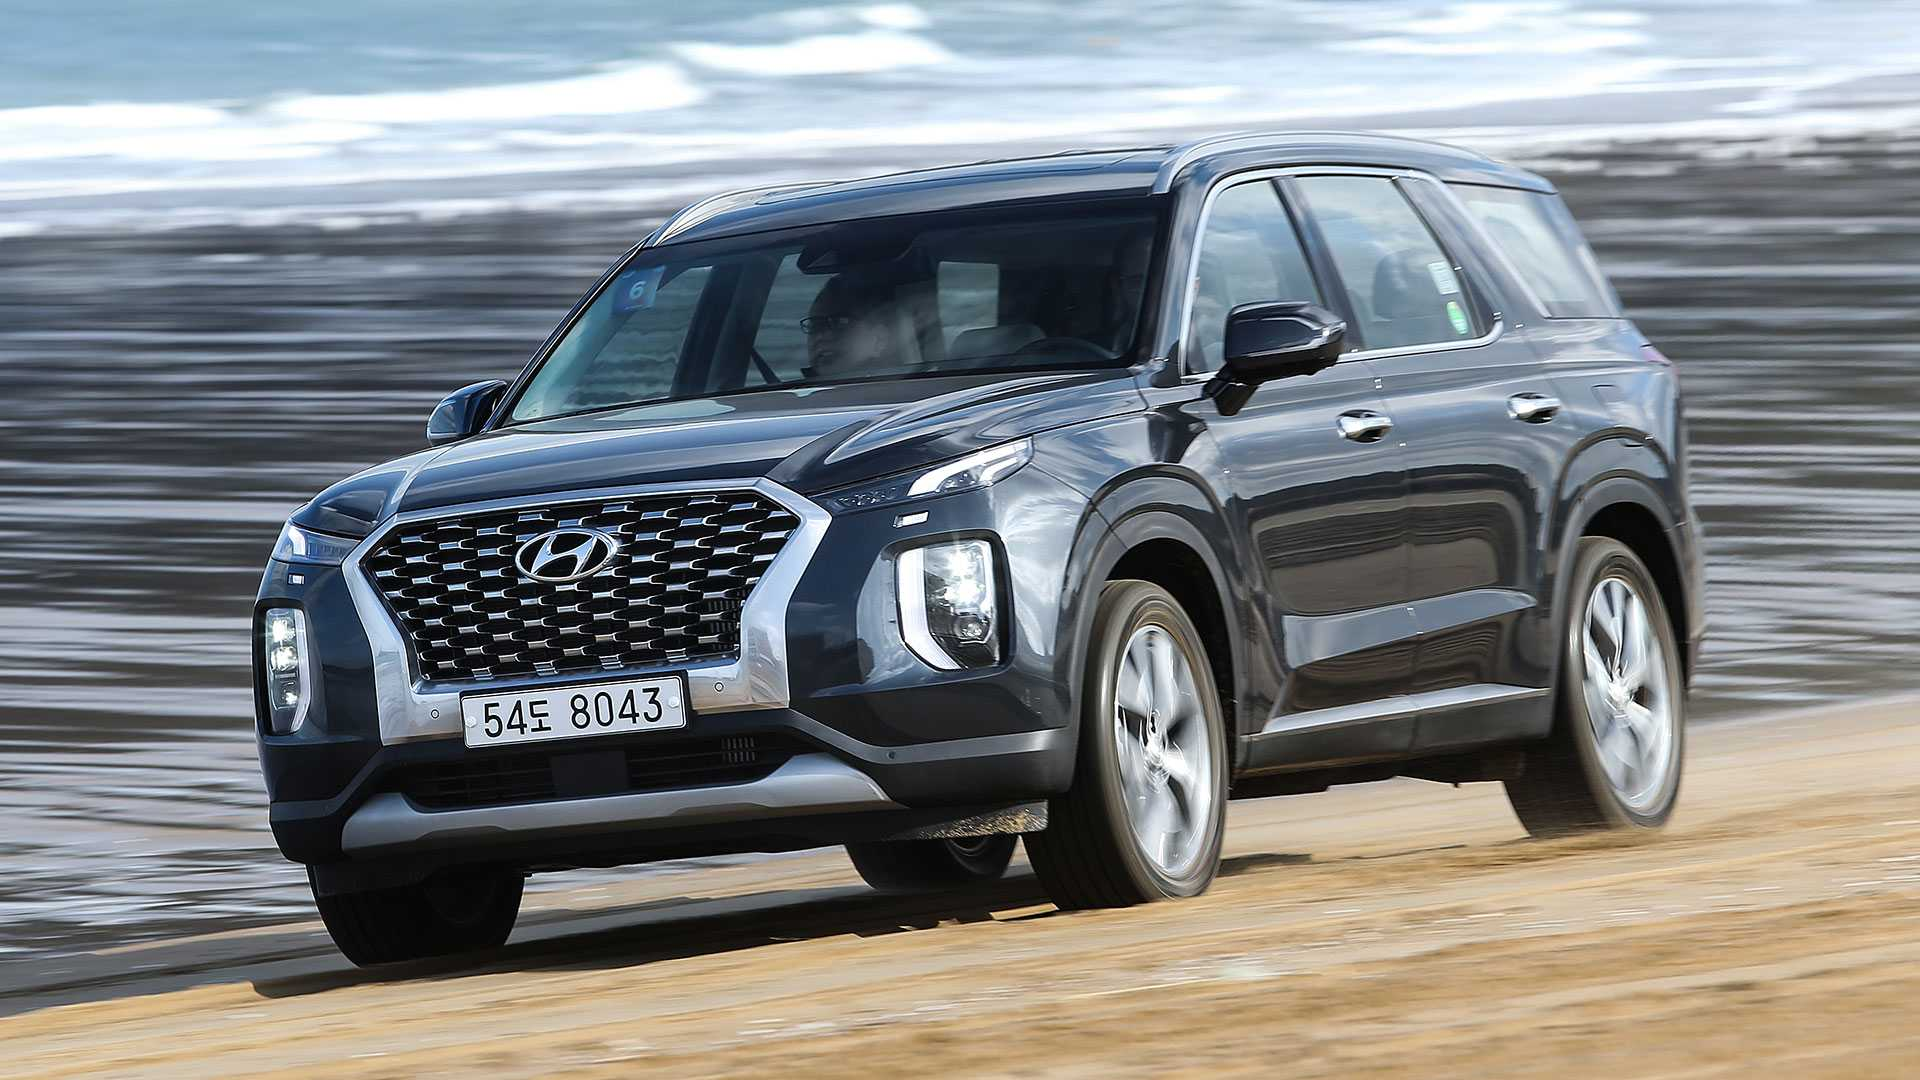 11 New Hyundai 2020 Family Car Price And Release Date